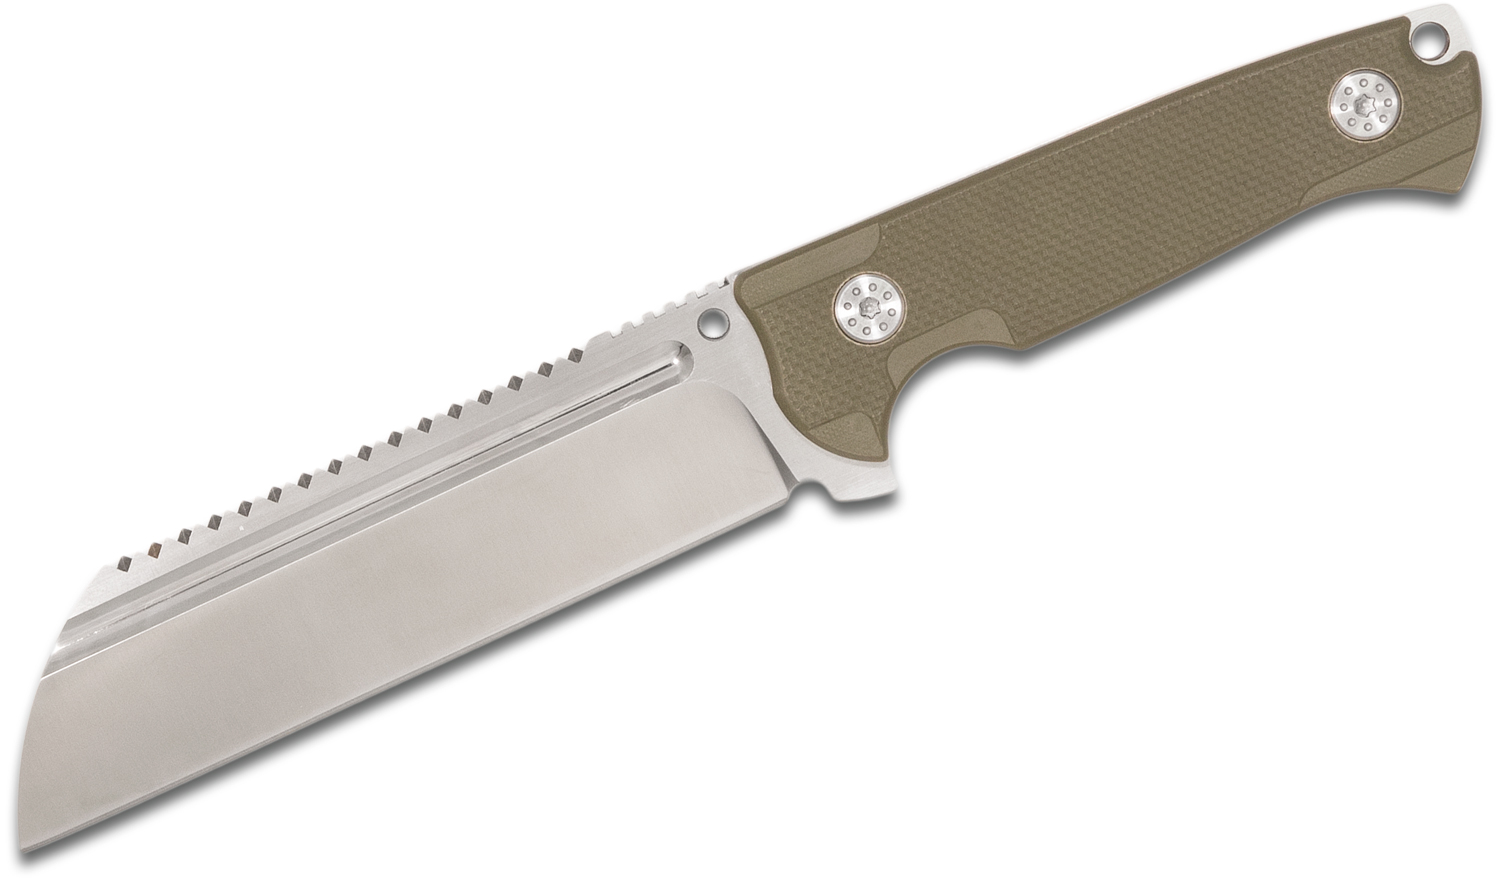 Andre De Villiers Knives Saw Butcher Fixed 6 inch S35VN Sawback Wharncliffe Blade, OD Green G10 Handles and Kydex Sheath